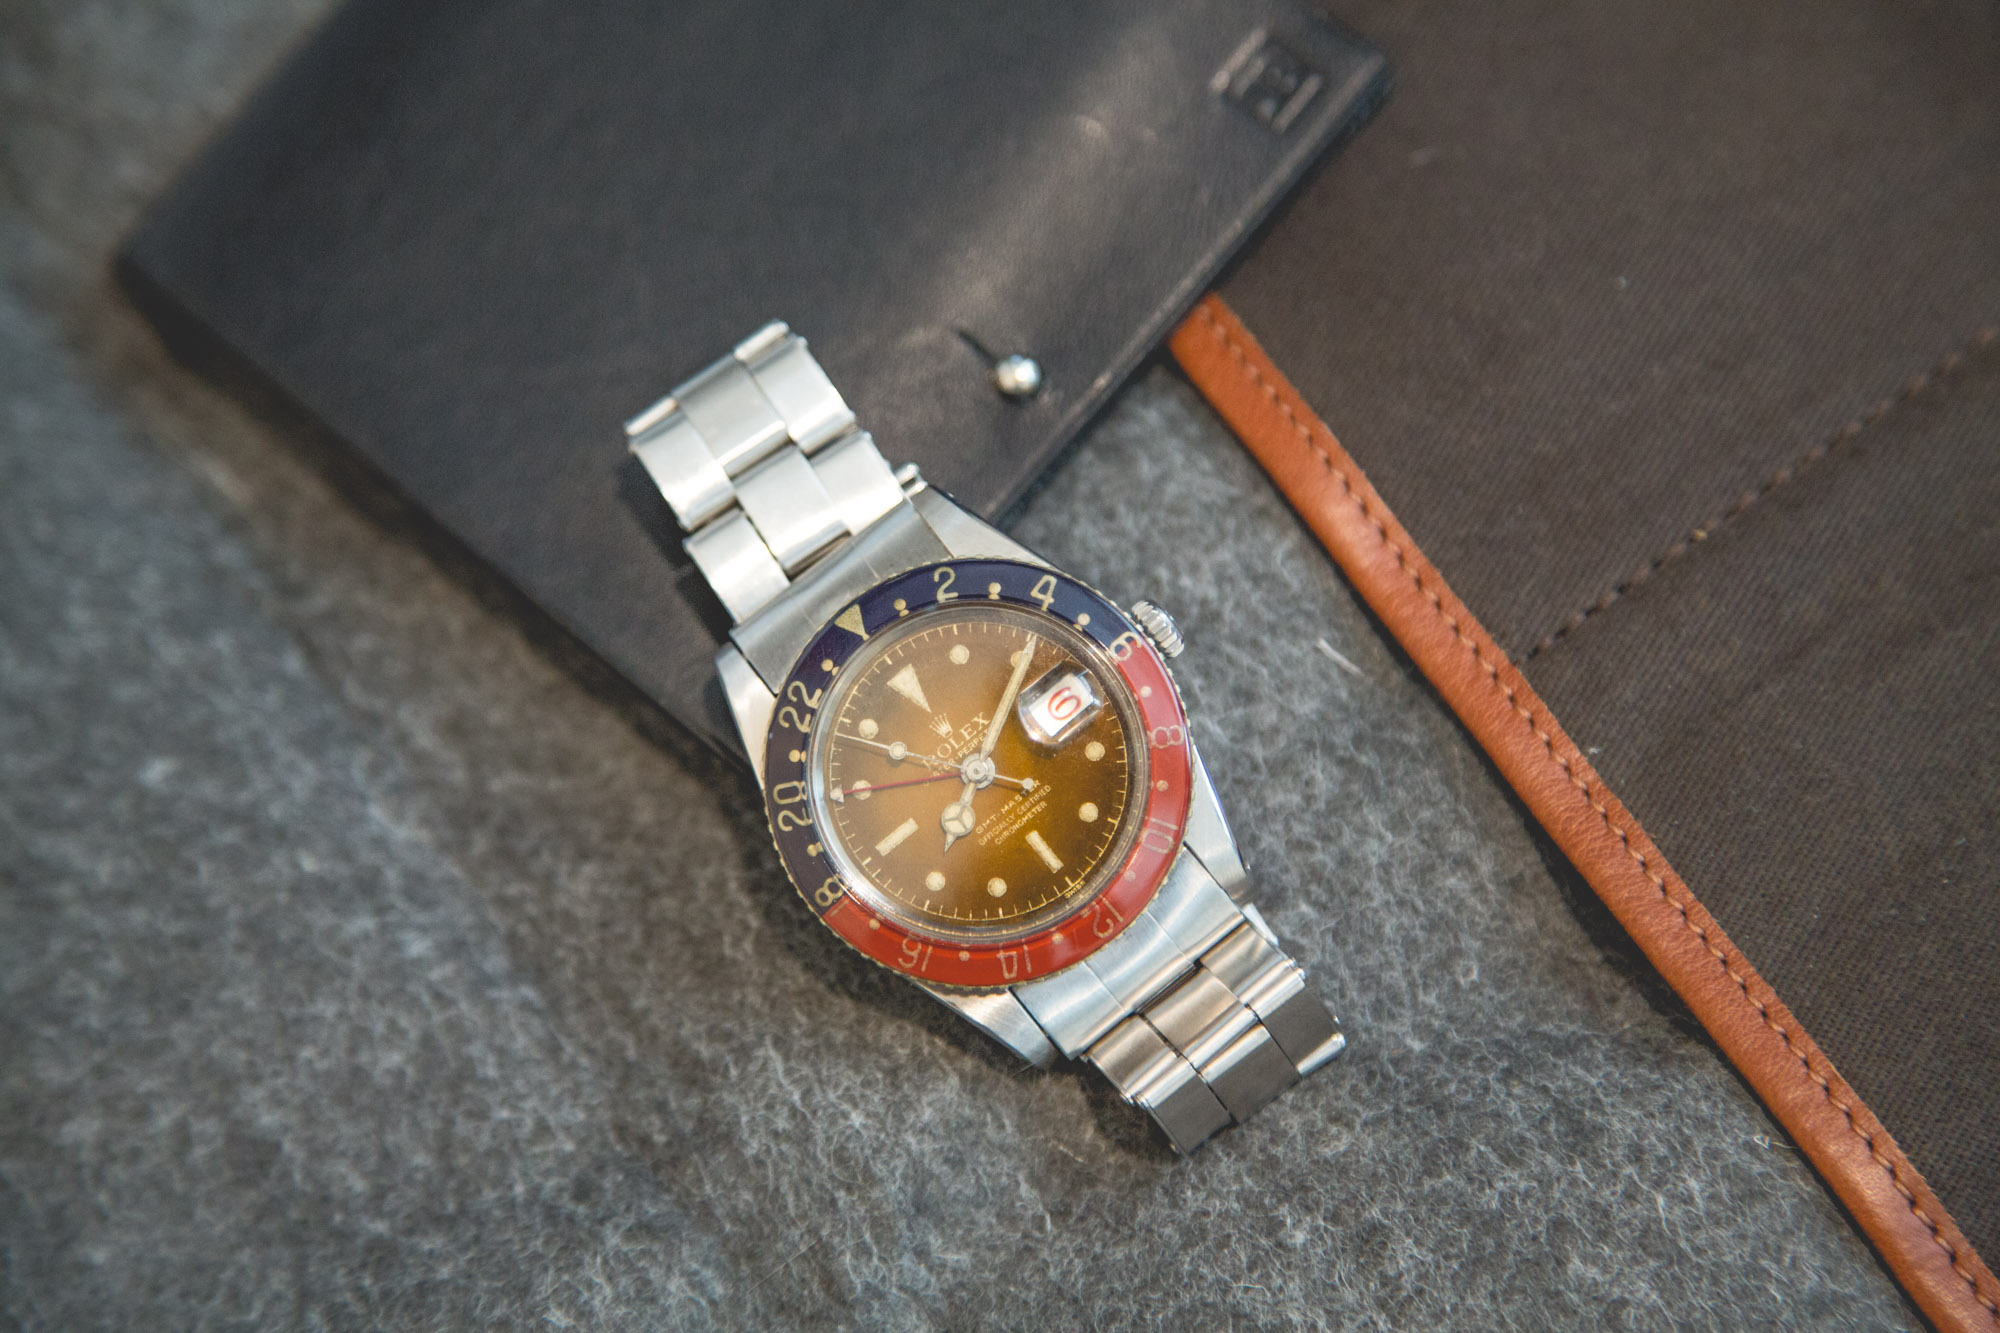 Rolex 6542 / 1958 - Cadran tropical